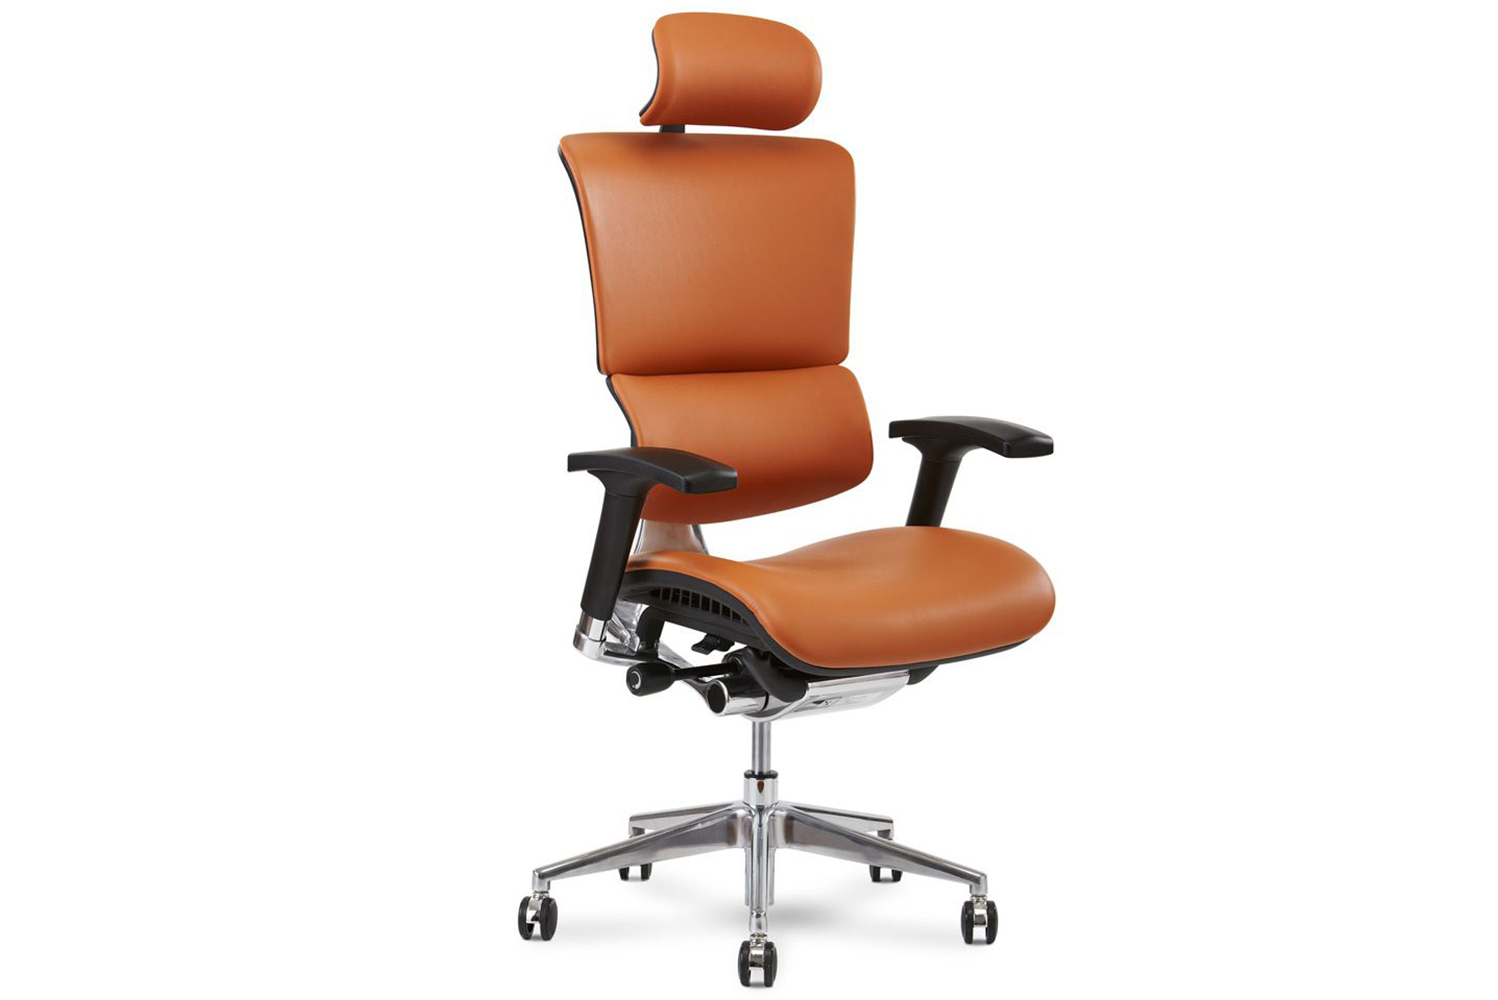 Additional features include adjustable seat height, adjustable seat depth, tilt tension and tilt lock, height-adjustable backrest, four-dimensional arms, and adjustable headrest angle.